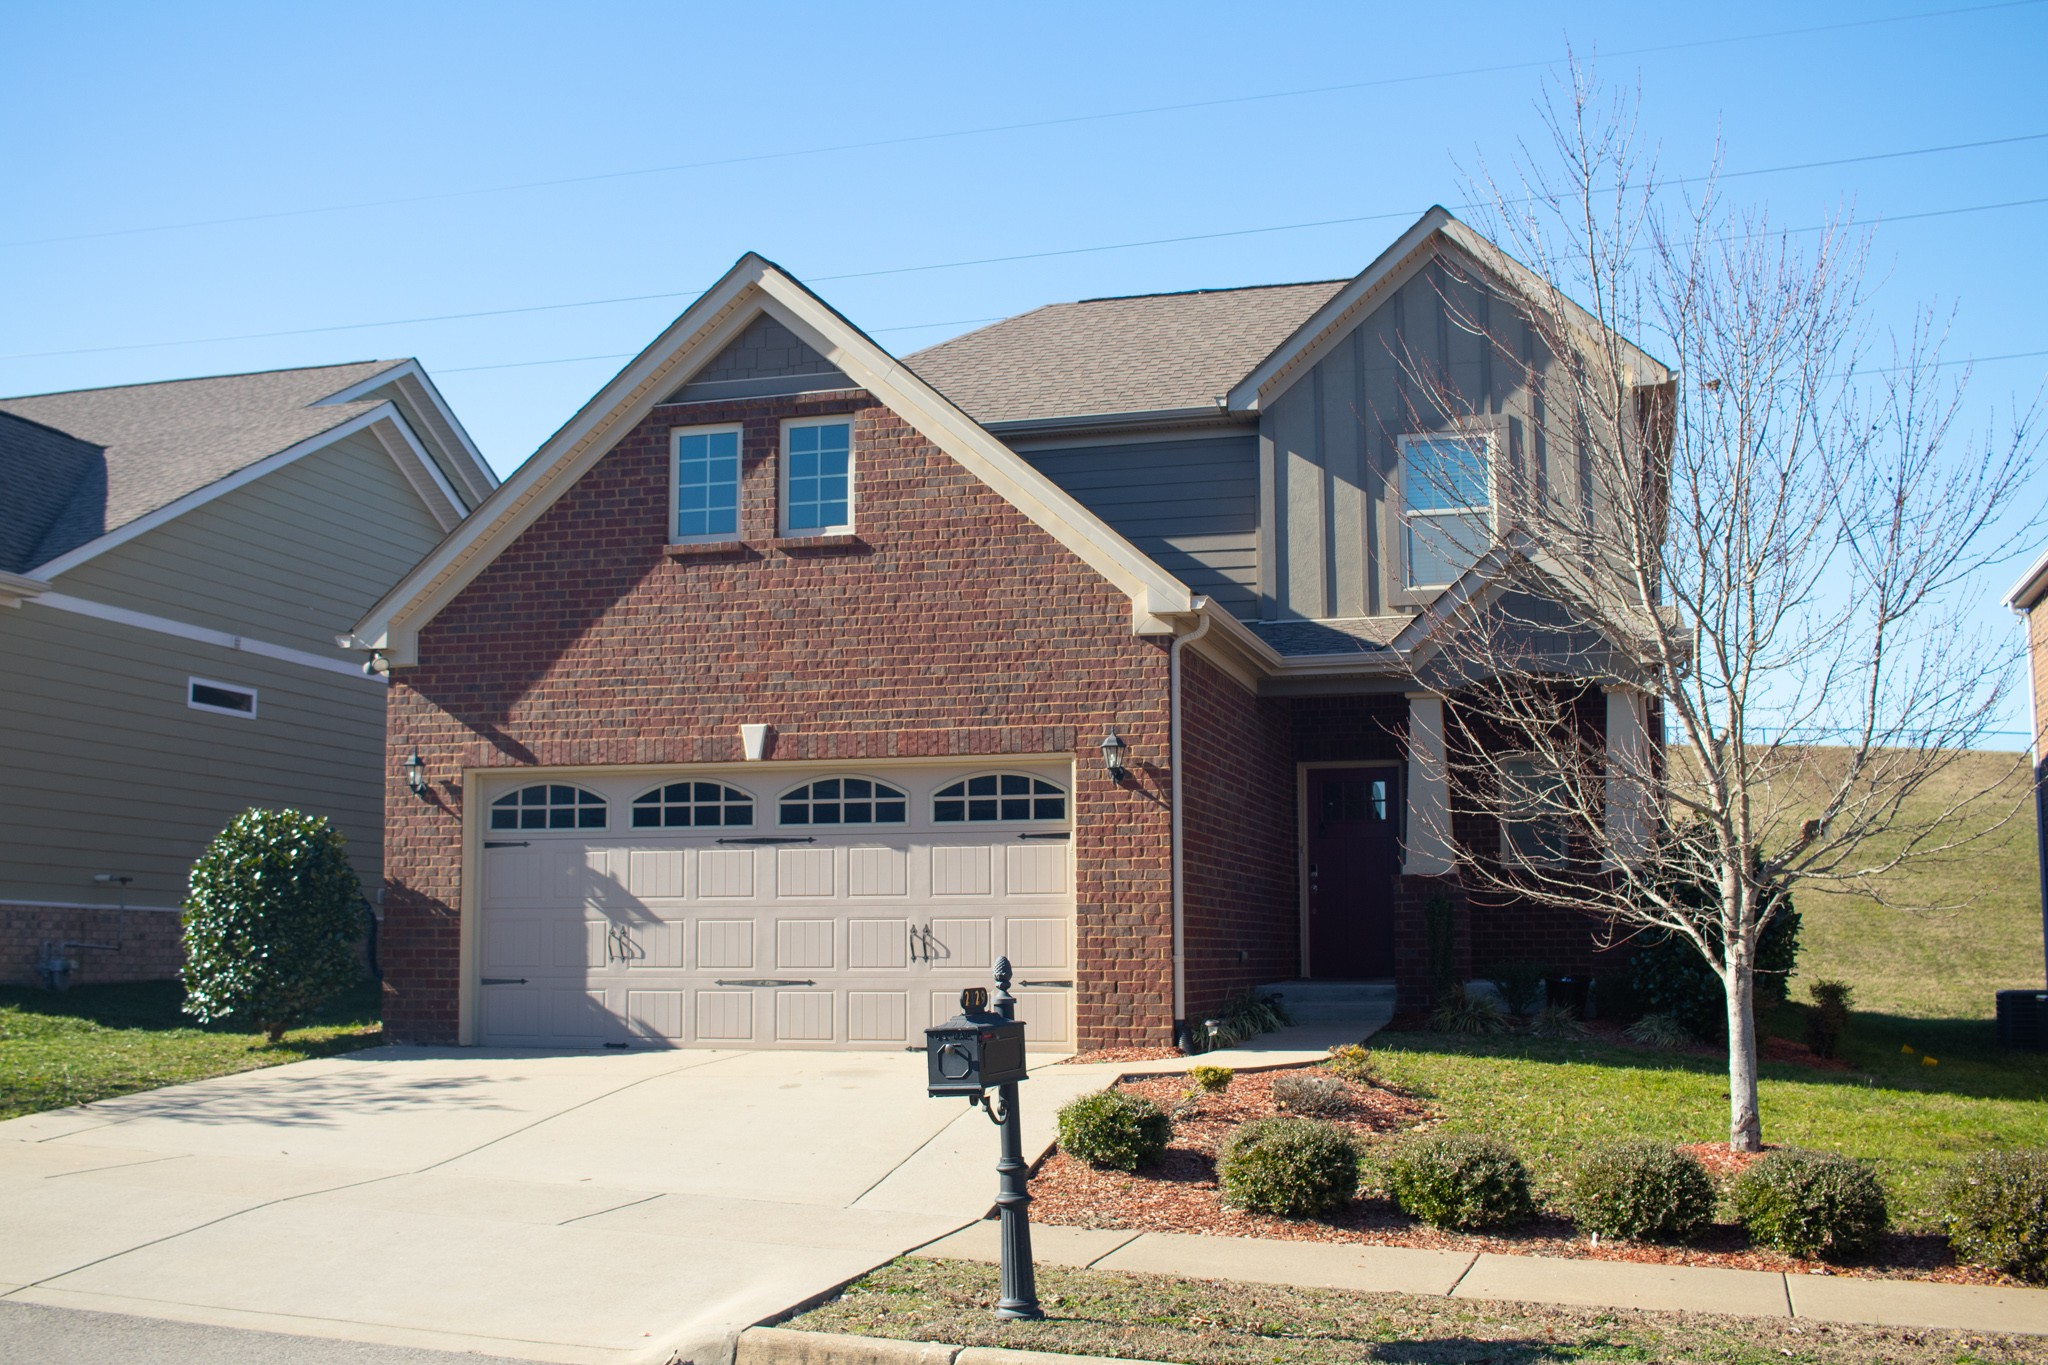 2329 Redwood Trl, Thompsons Station, TN 37179 - Thompsons Station, TN real estate listing